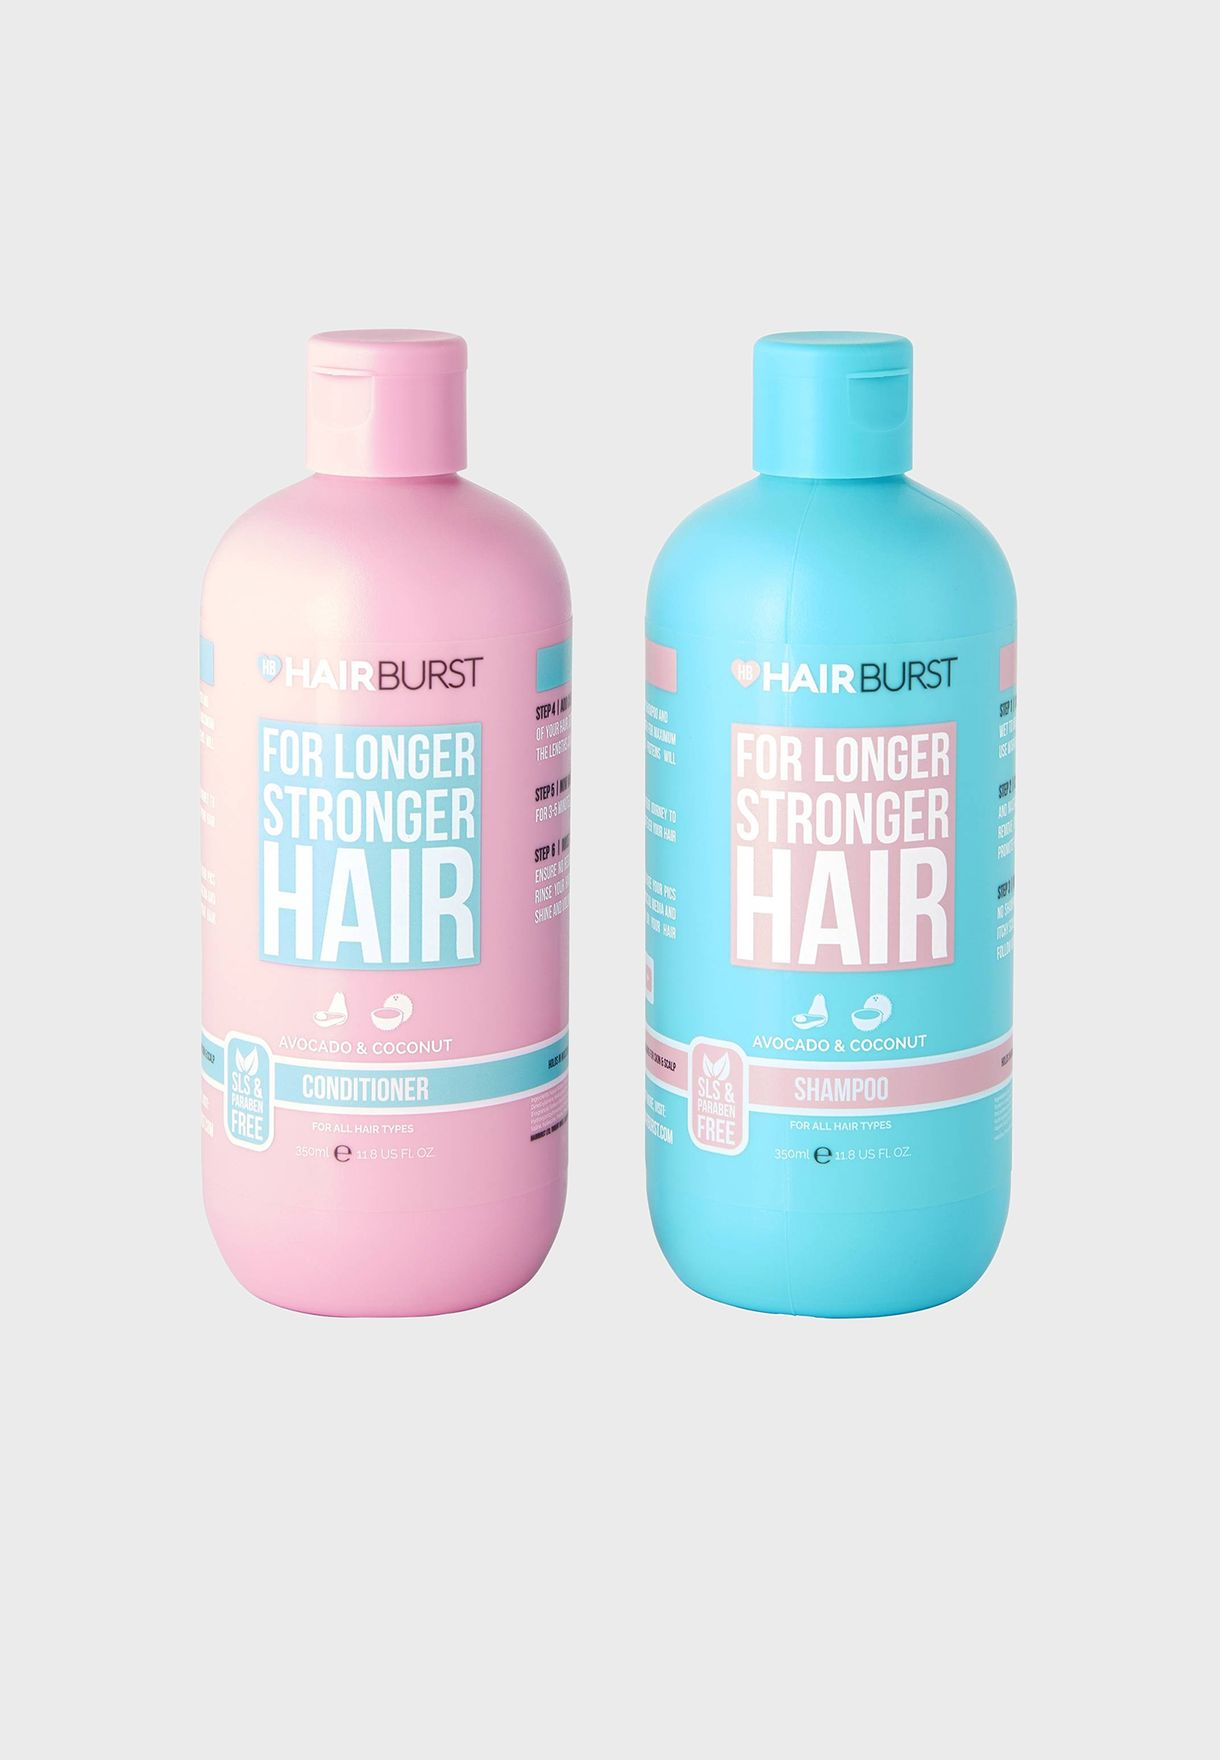 Shampoo & Conditioner duo pack